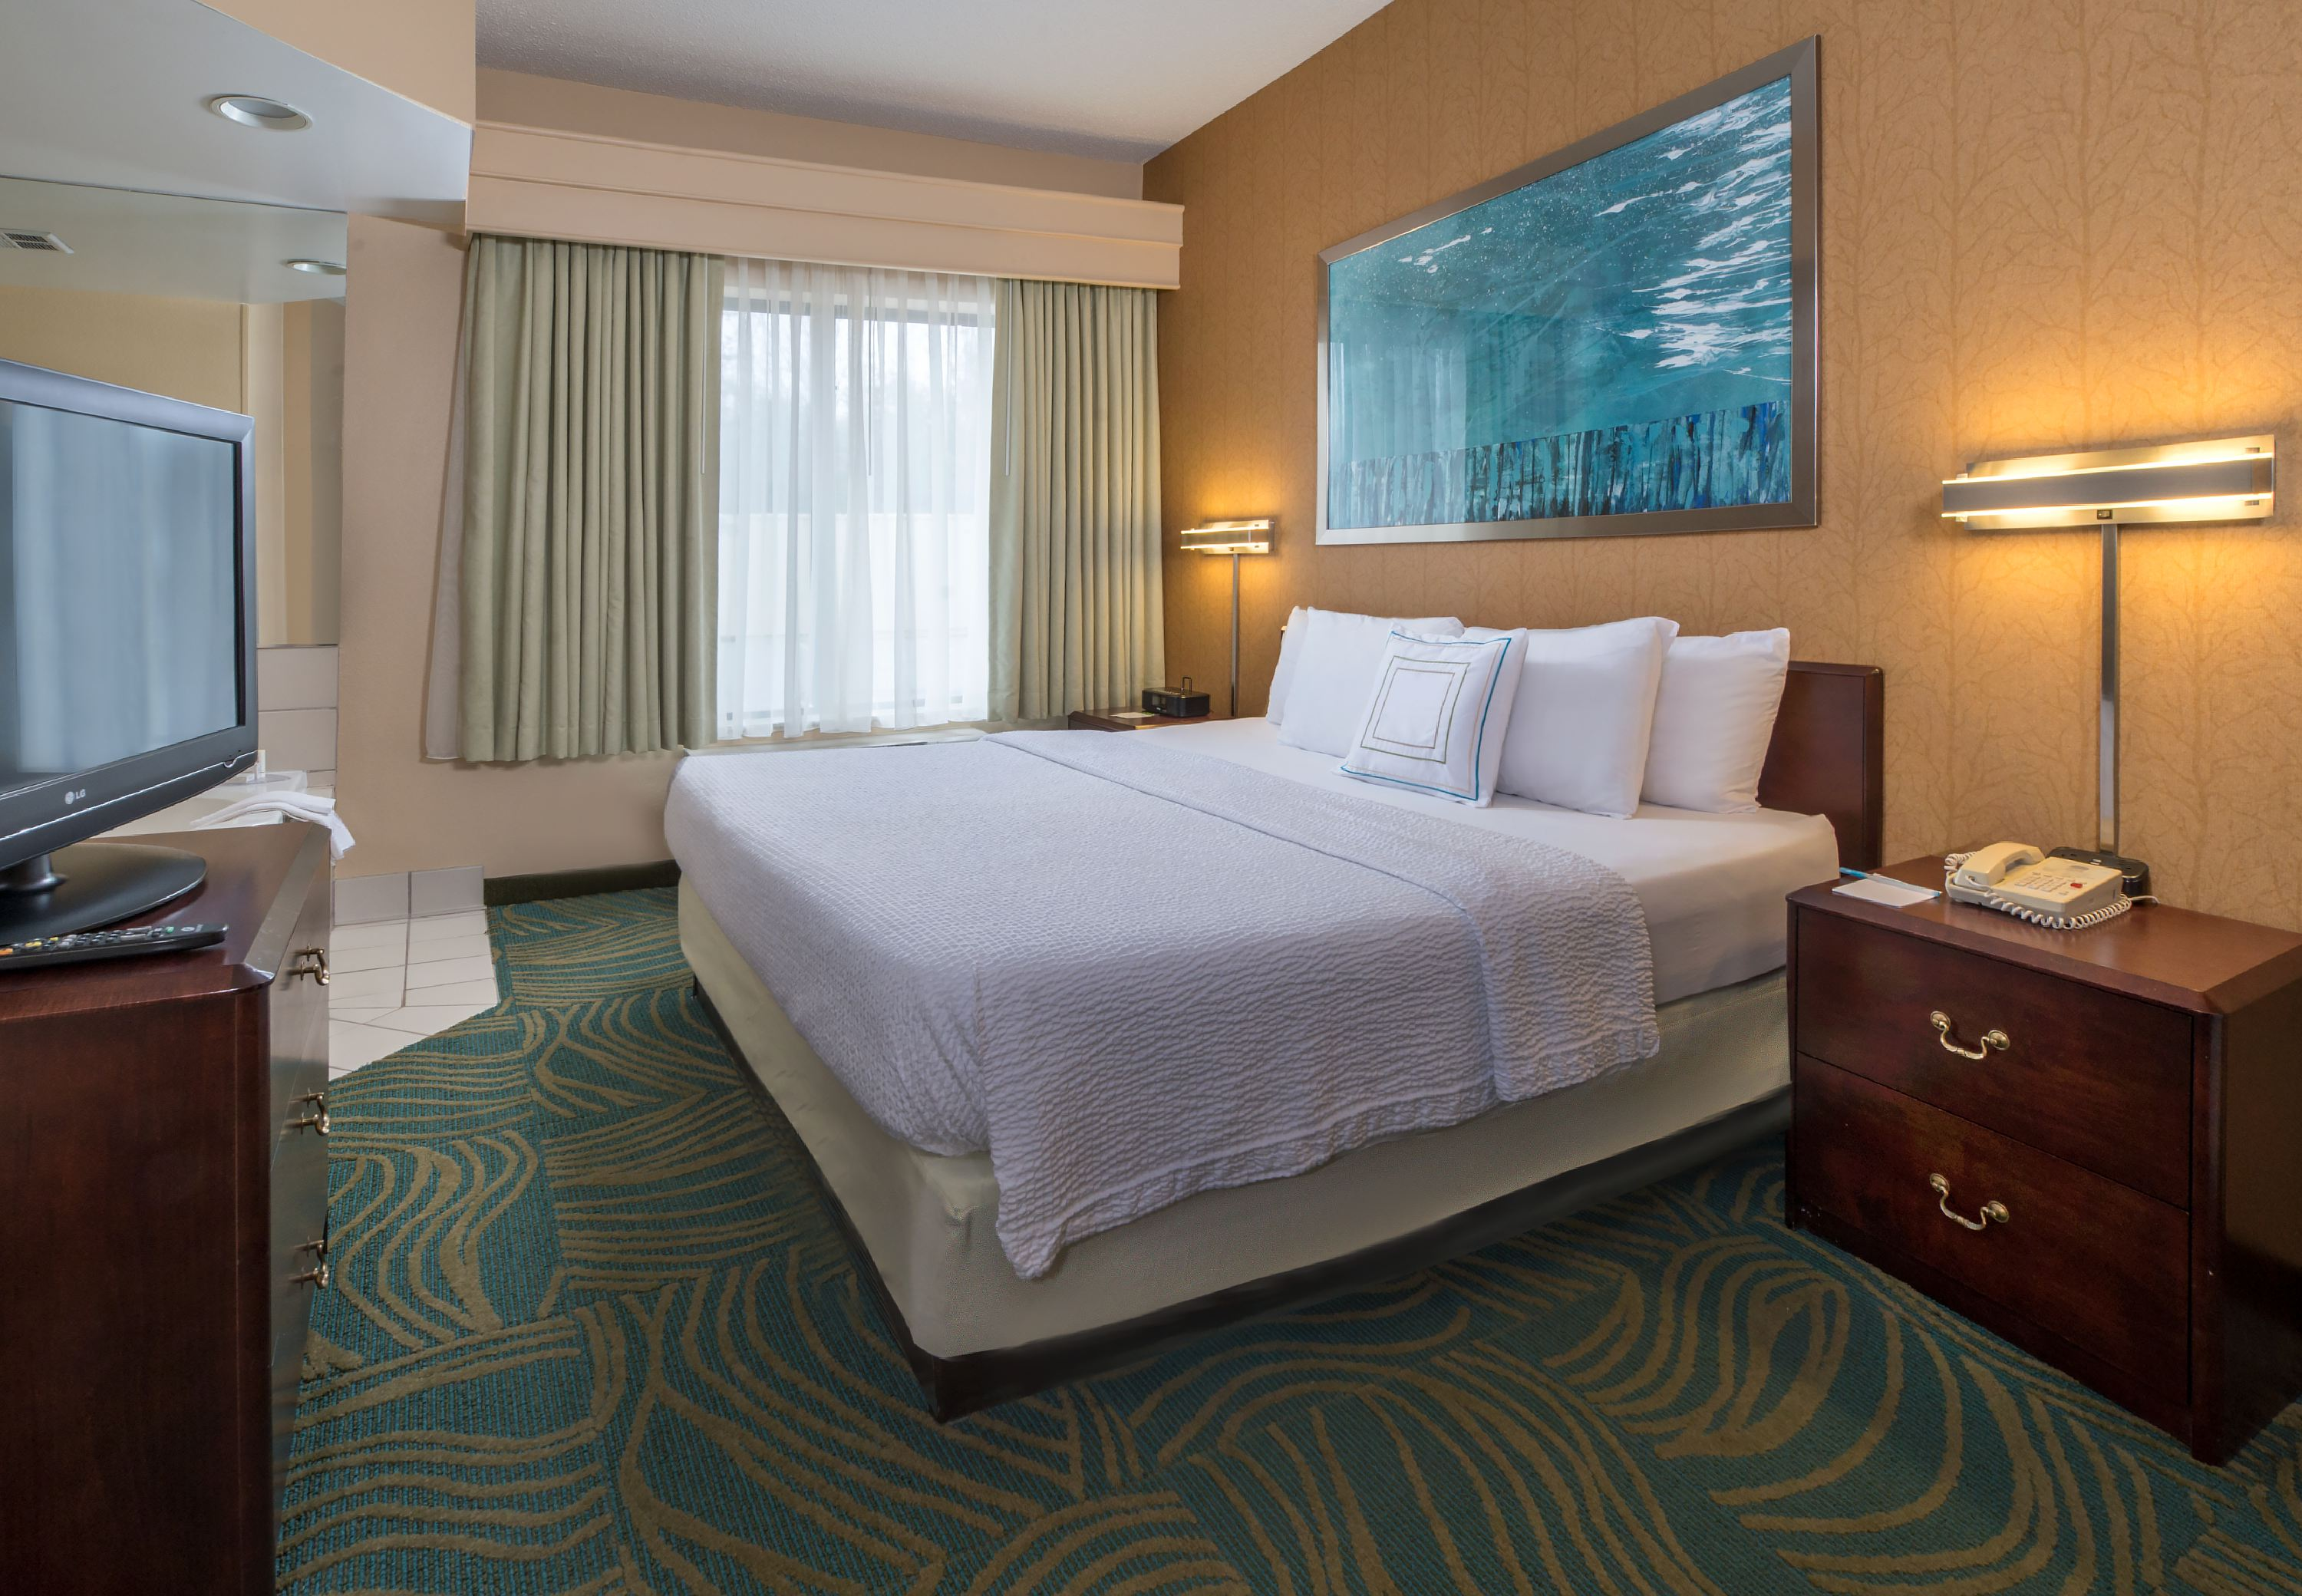 SpringHill Suites by Marriott Edgewood Aberdeen image 3